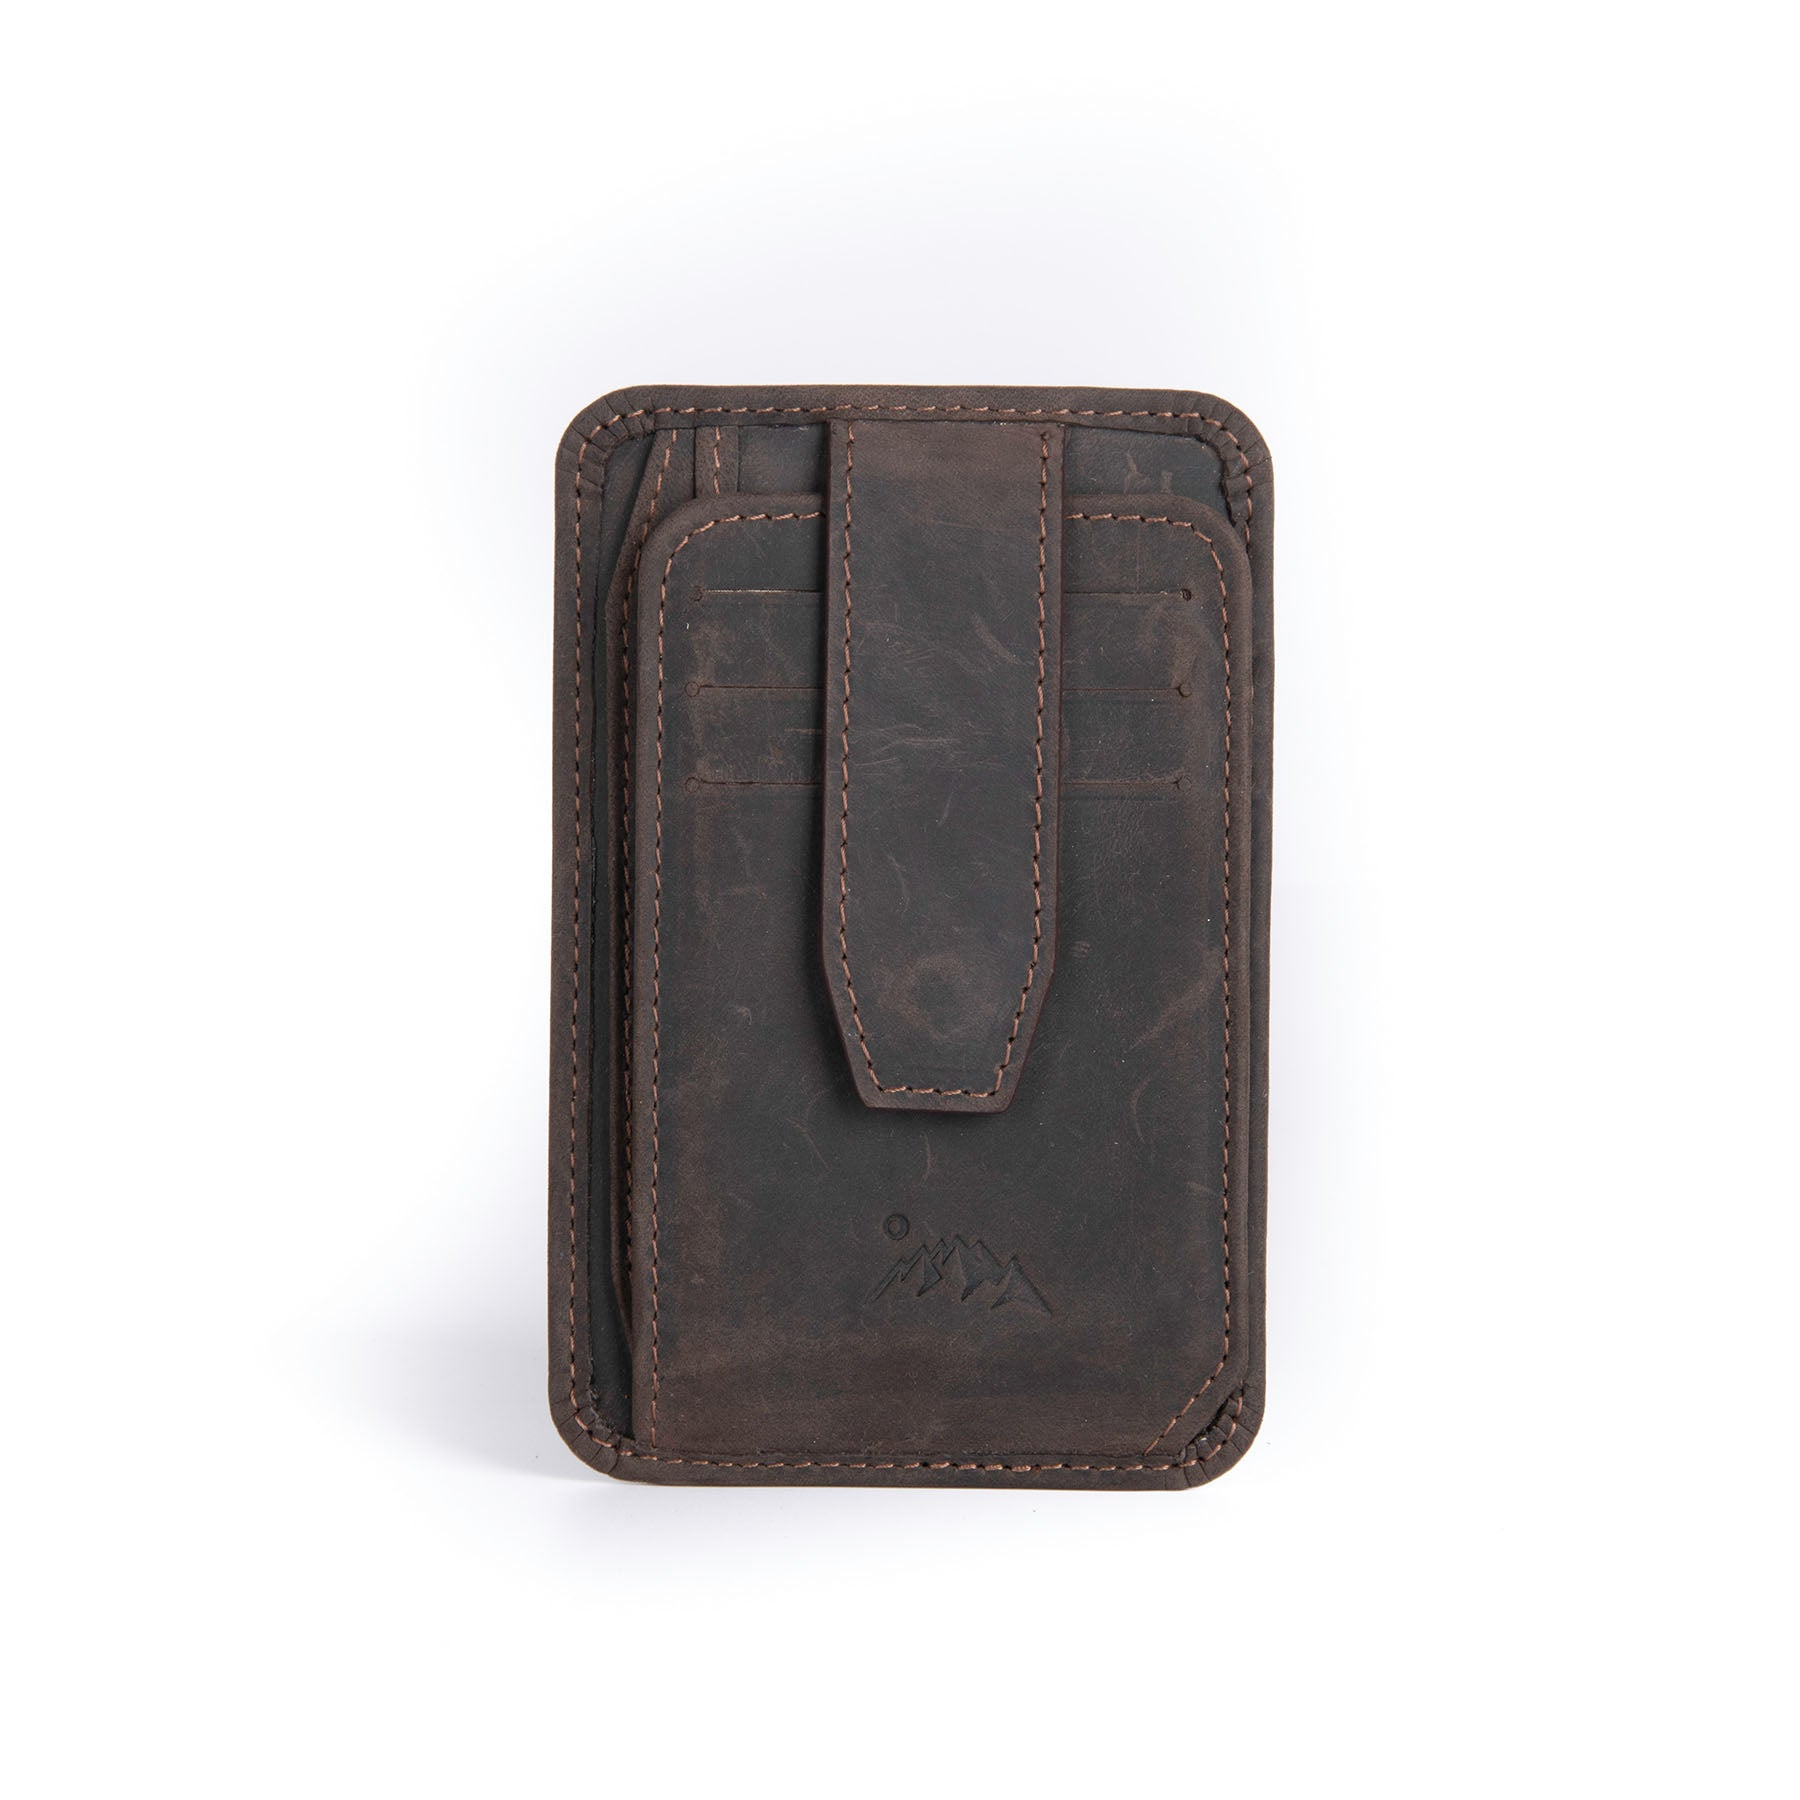 Canyon Leather Wallet - Chestnut 1